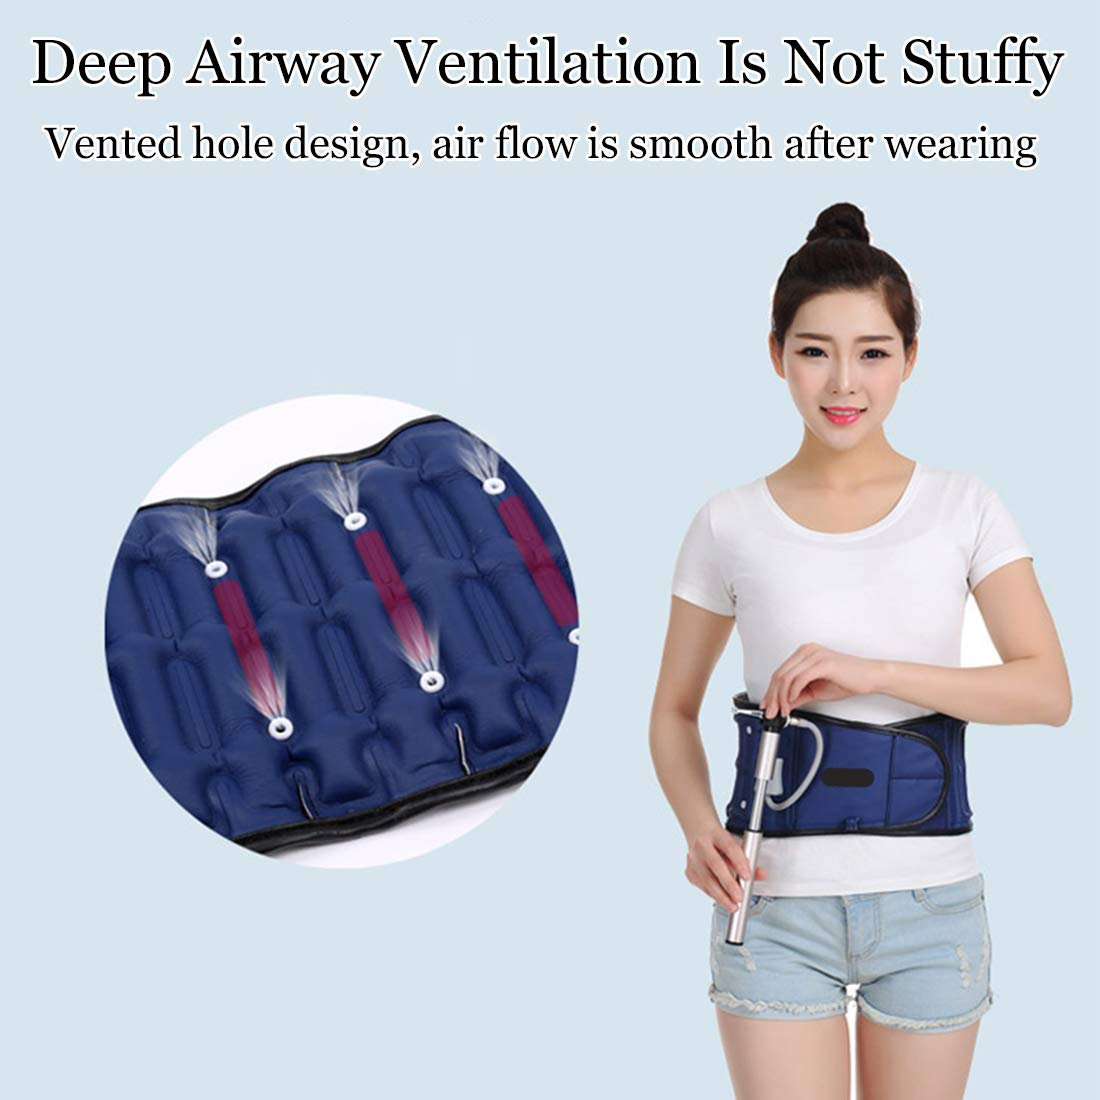 Deep Airway Decompression Back Belt,Decompression Traction Device And Lower Lumbar Support For Back Pain. Blue